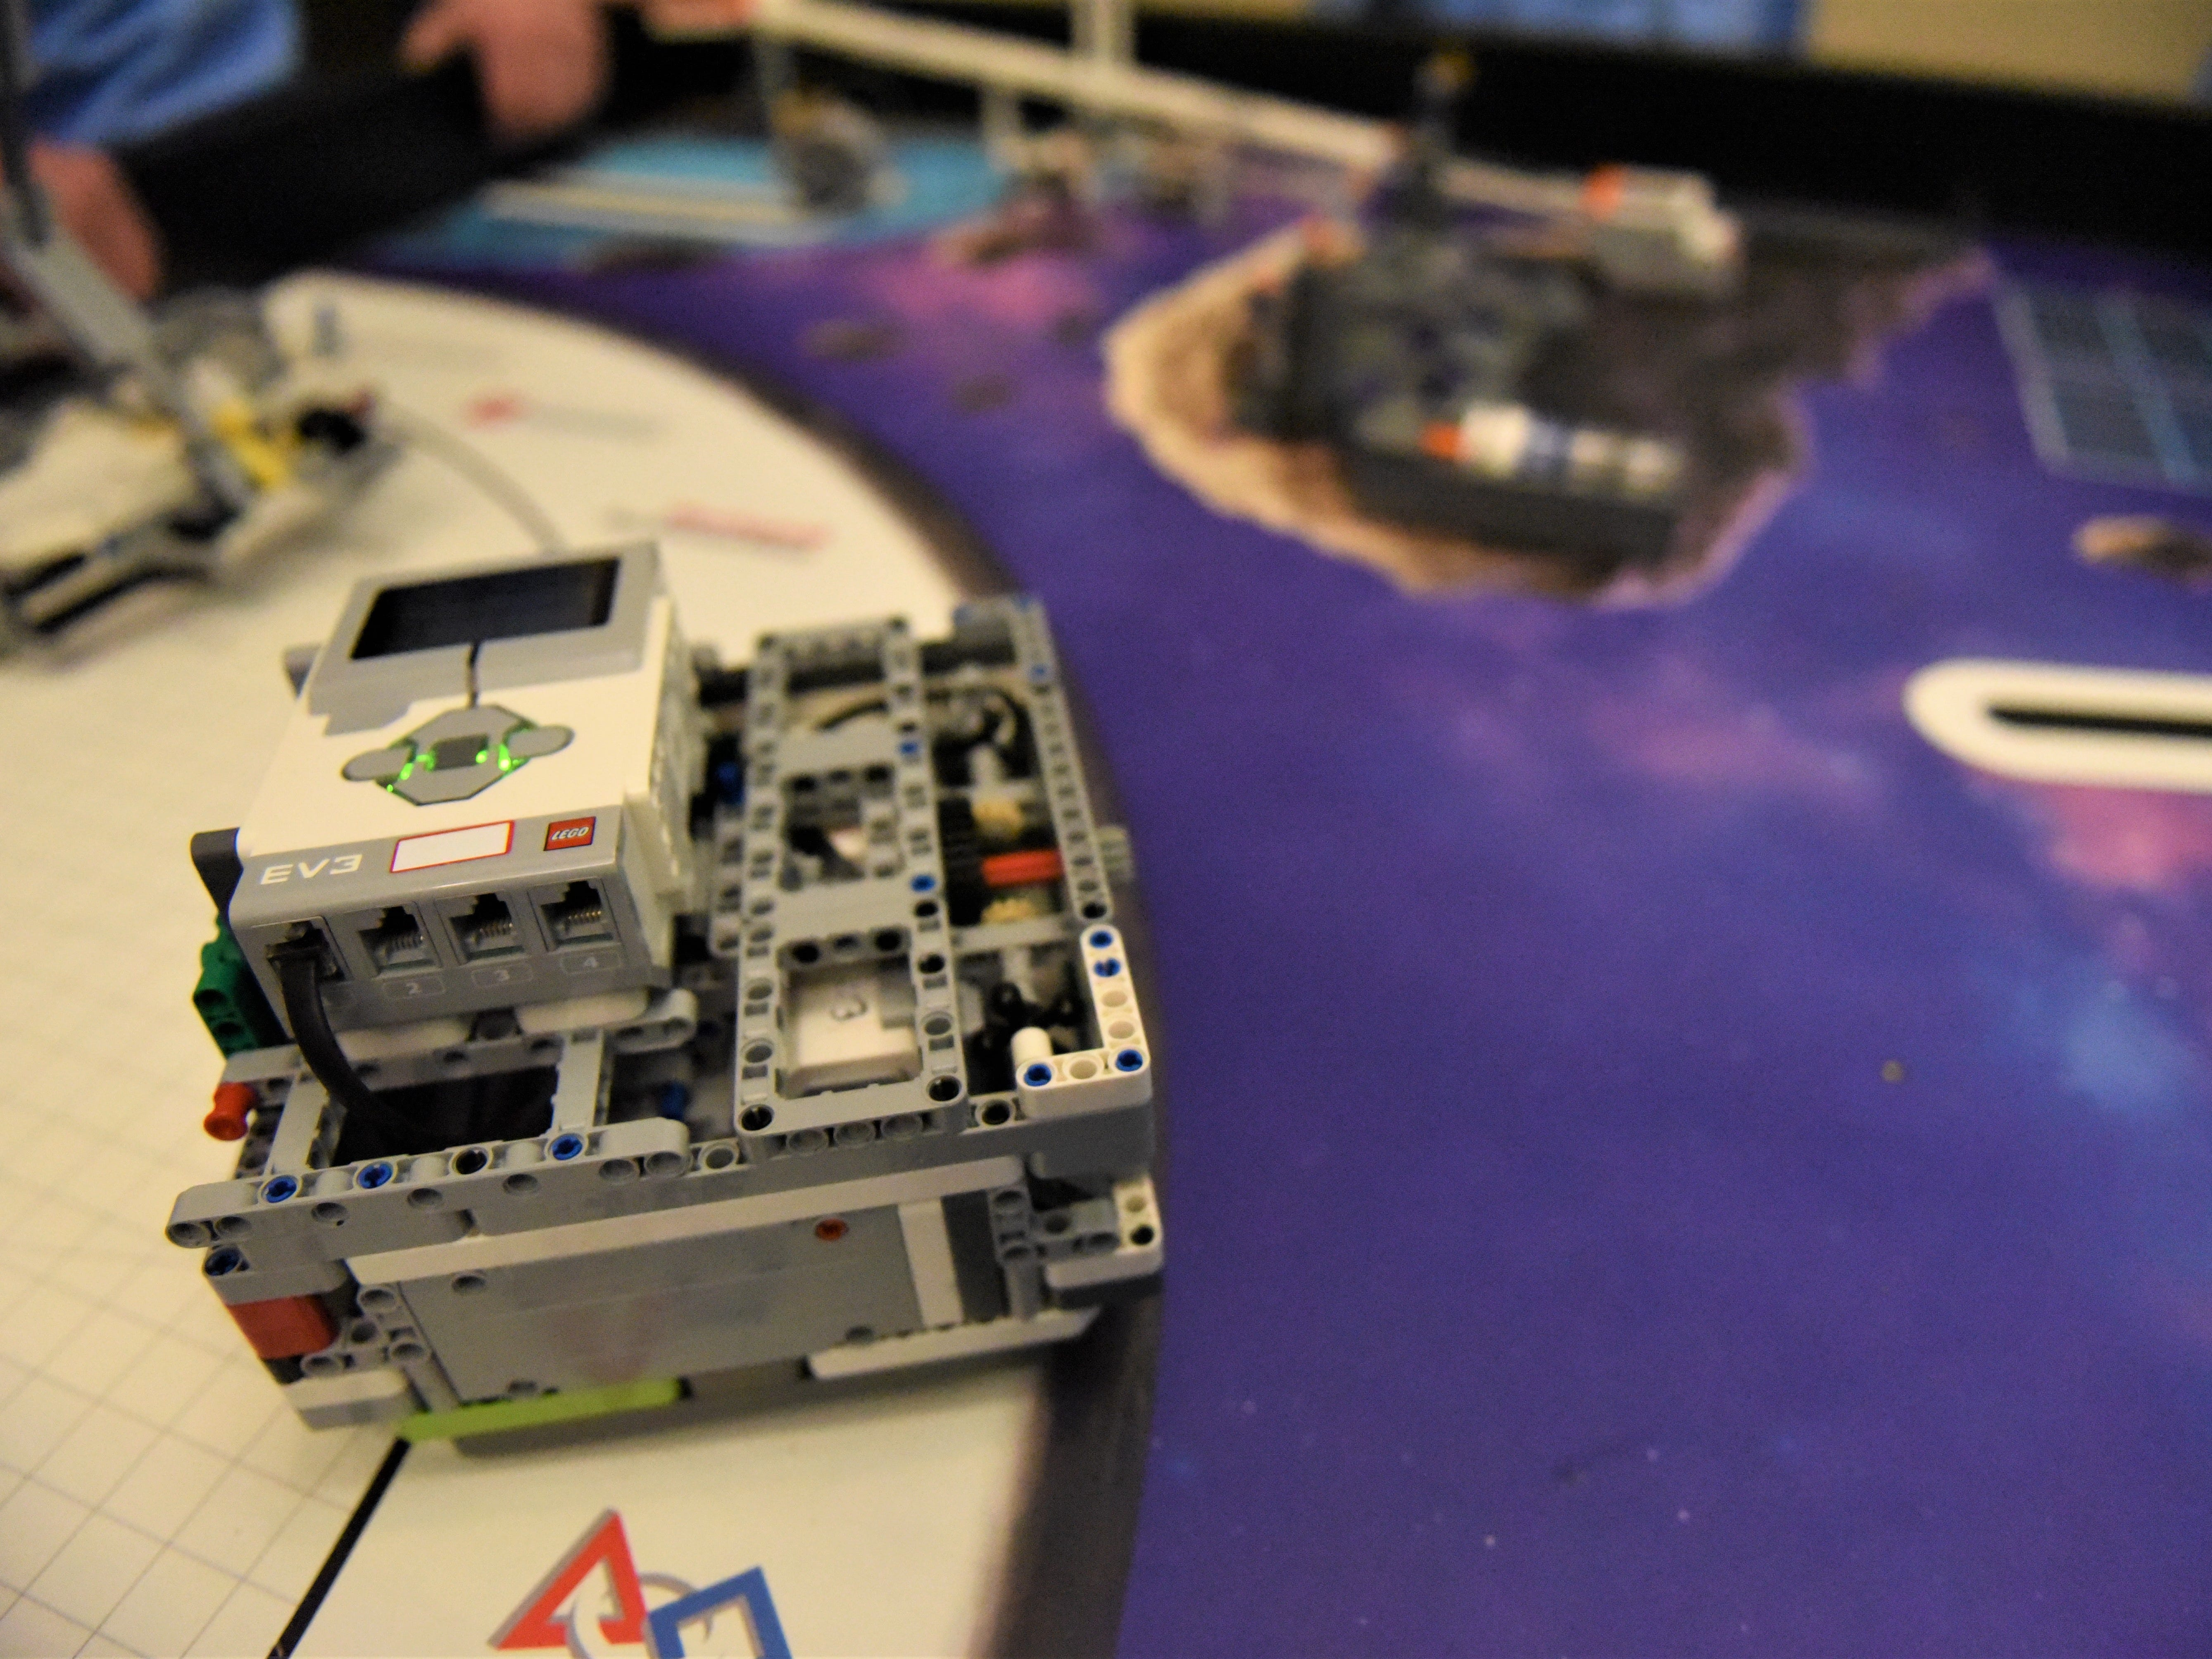 The Guthrie Memorial Library robotics team, Optic Nerds, will compete in the FIRST LEGO League Challenge on Jan. 26 at the Penn State Berks campus. The winner of the competition will go to nationals. The Optic Nerds have three timed attempts to complete as many tasks as they can with this robot.